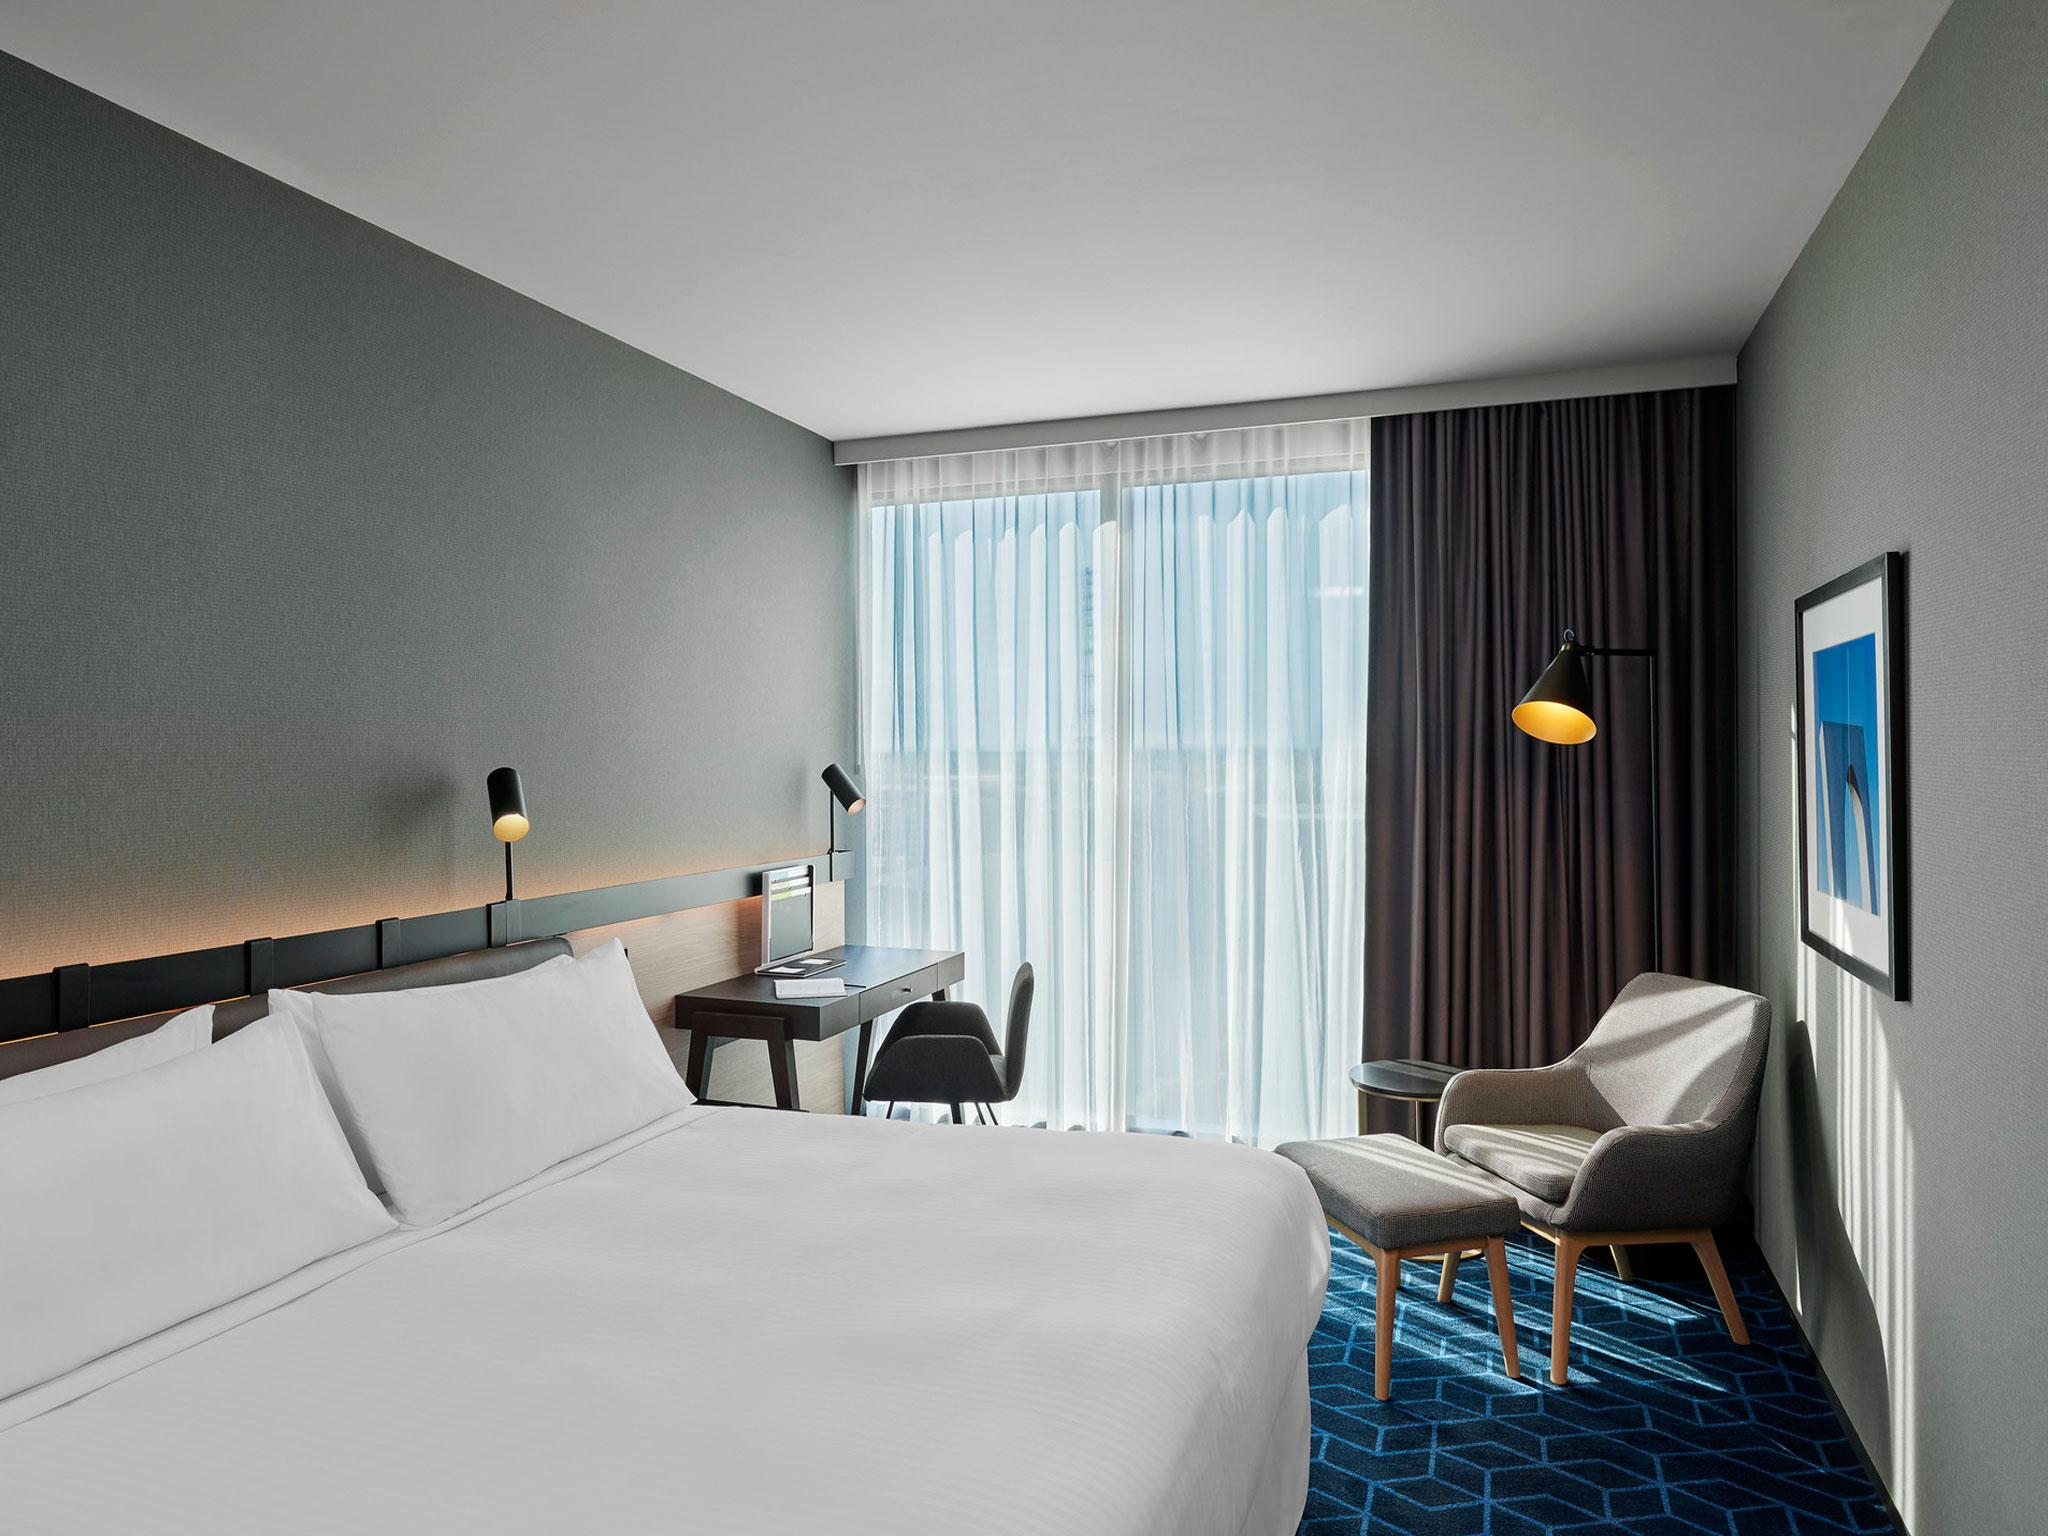 Bed Reviews Australia Four Points By Sheraton Melbourne Docklands In Australia